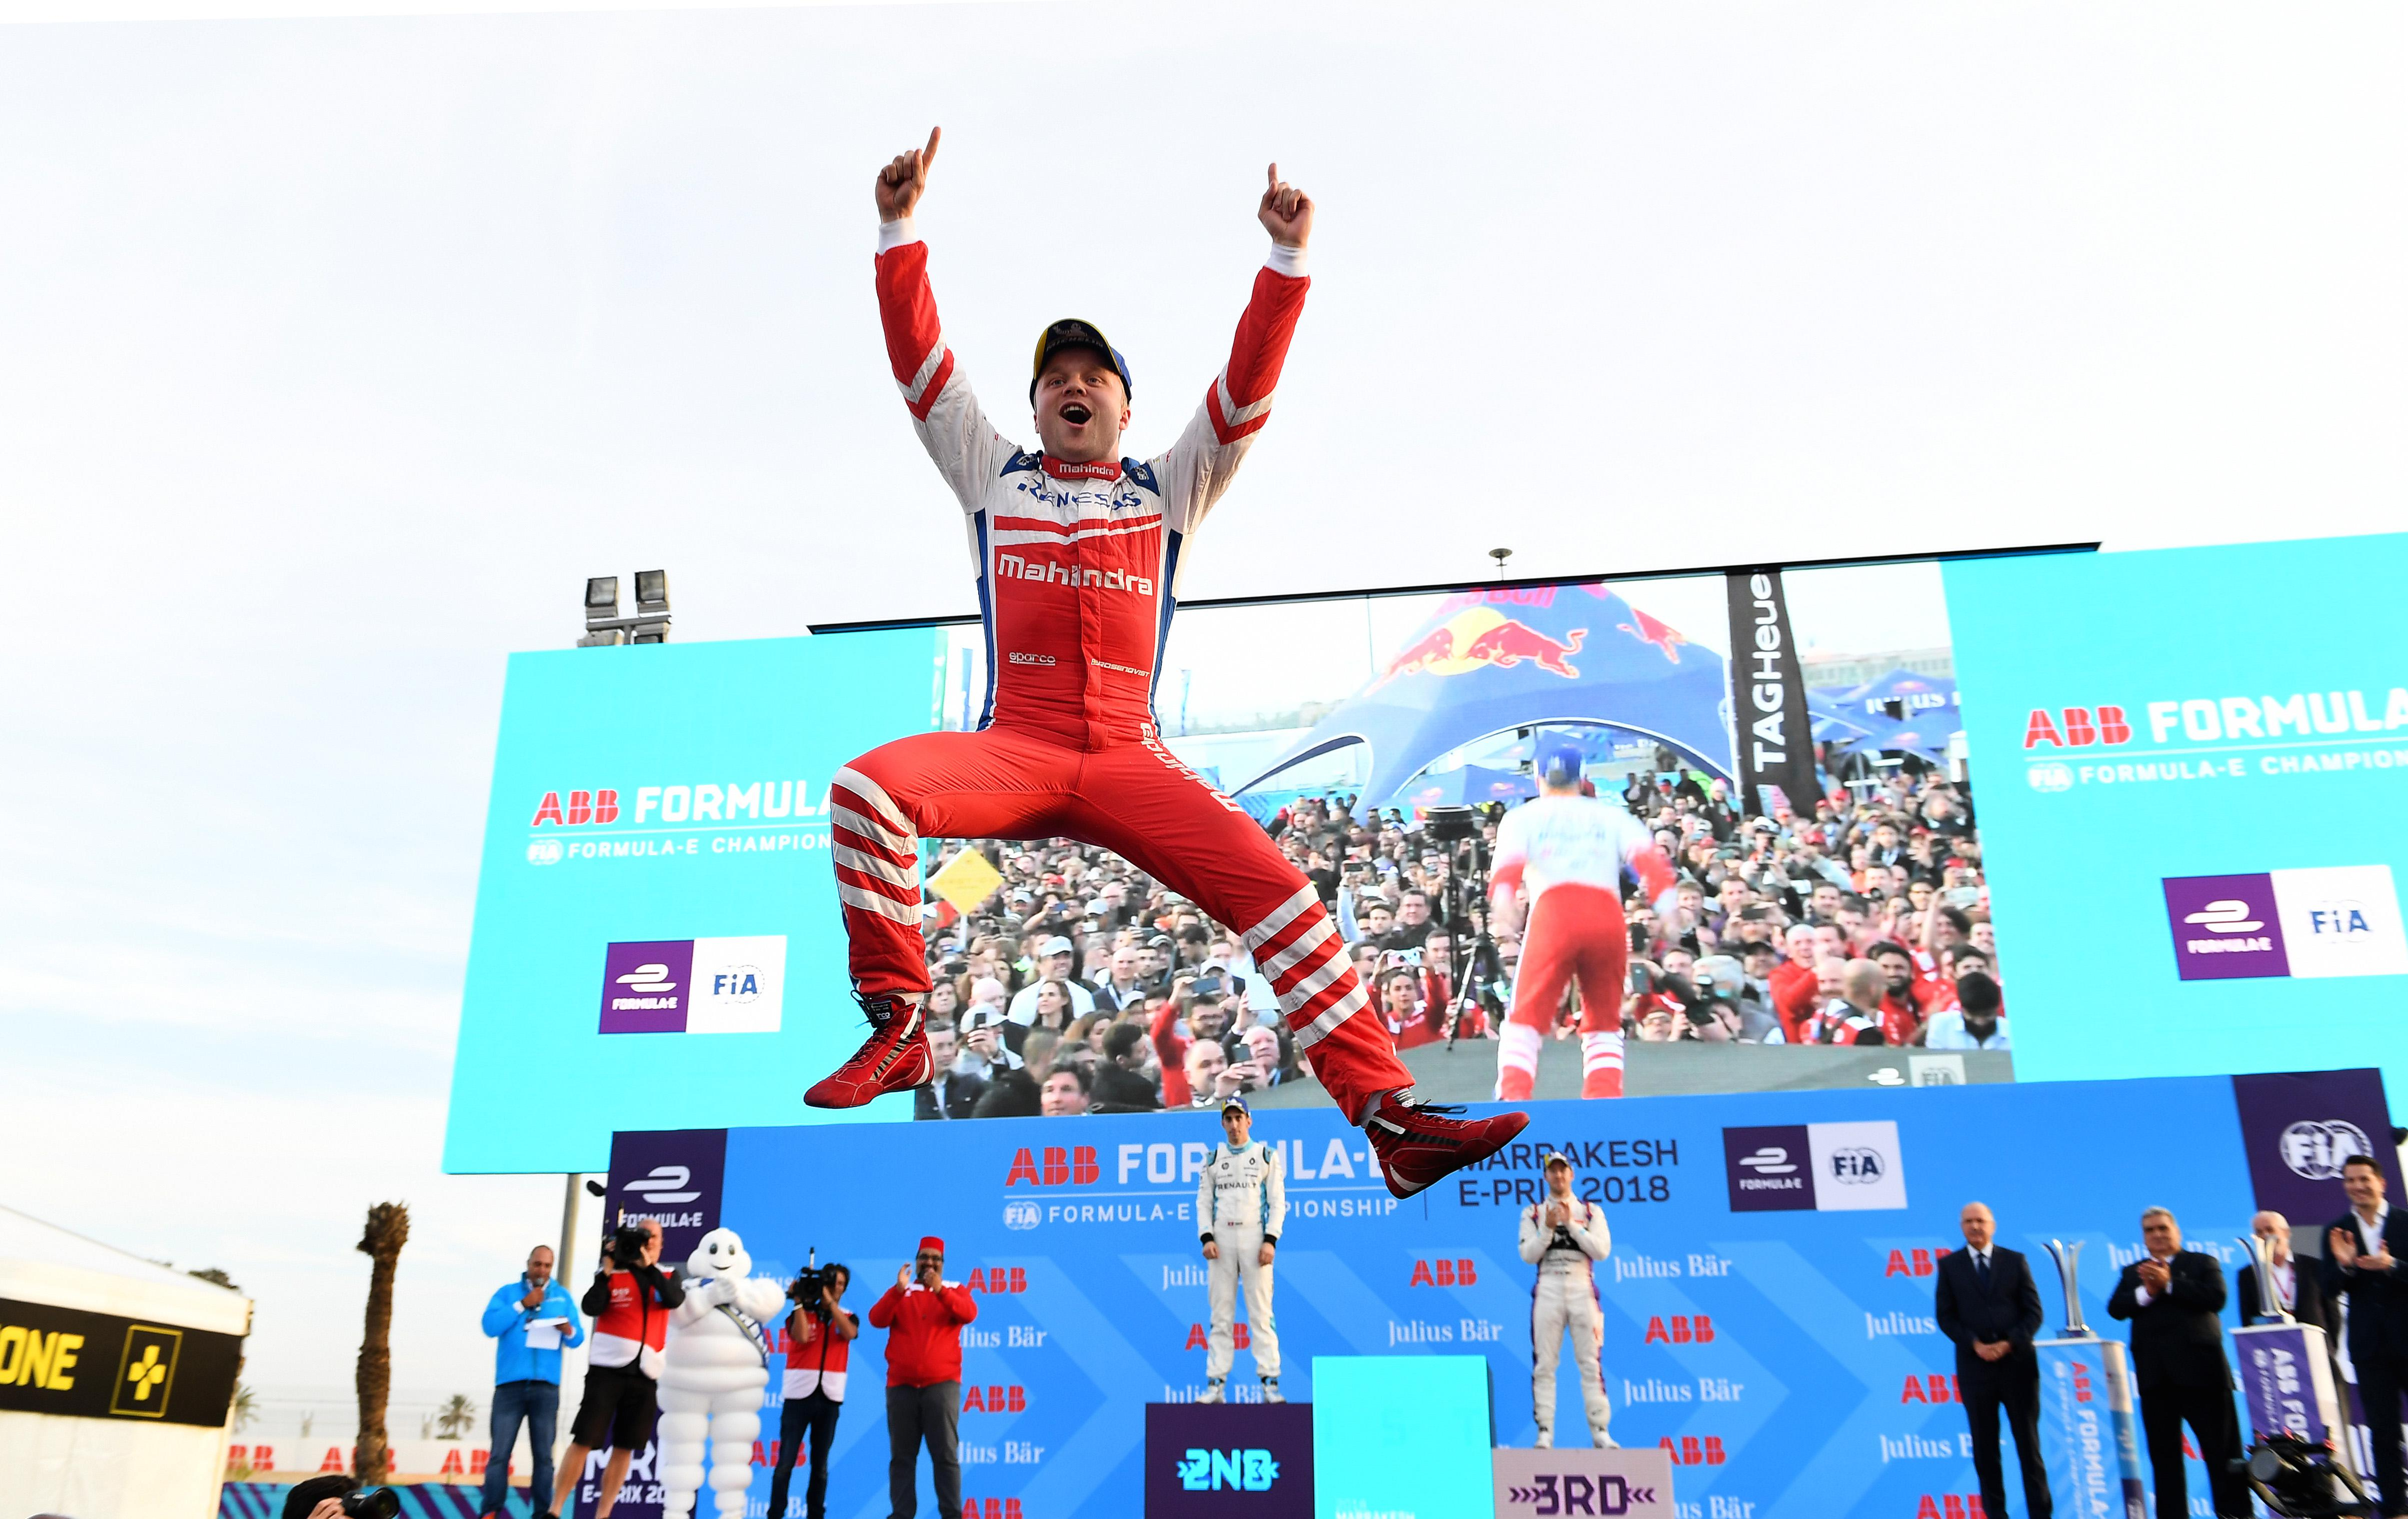 Sweden's Felix Rosenqvist is currently leading the Formula E table